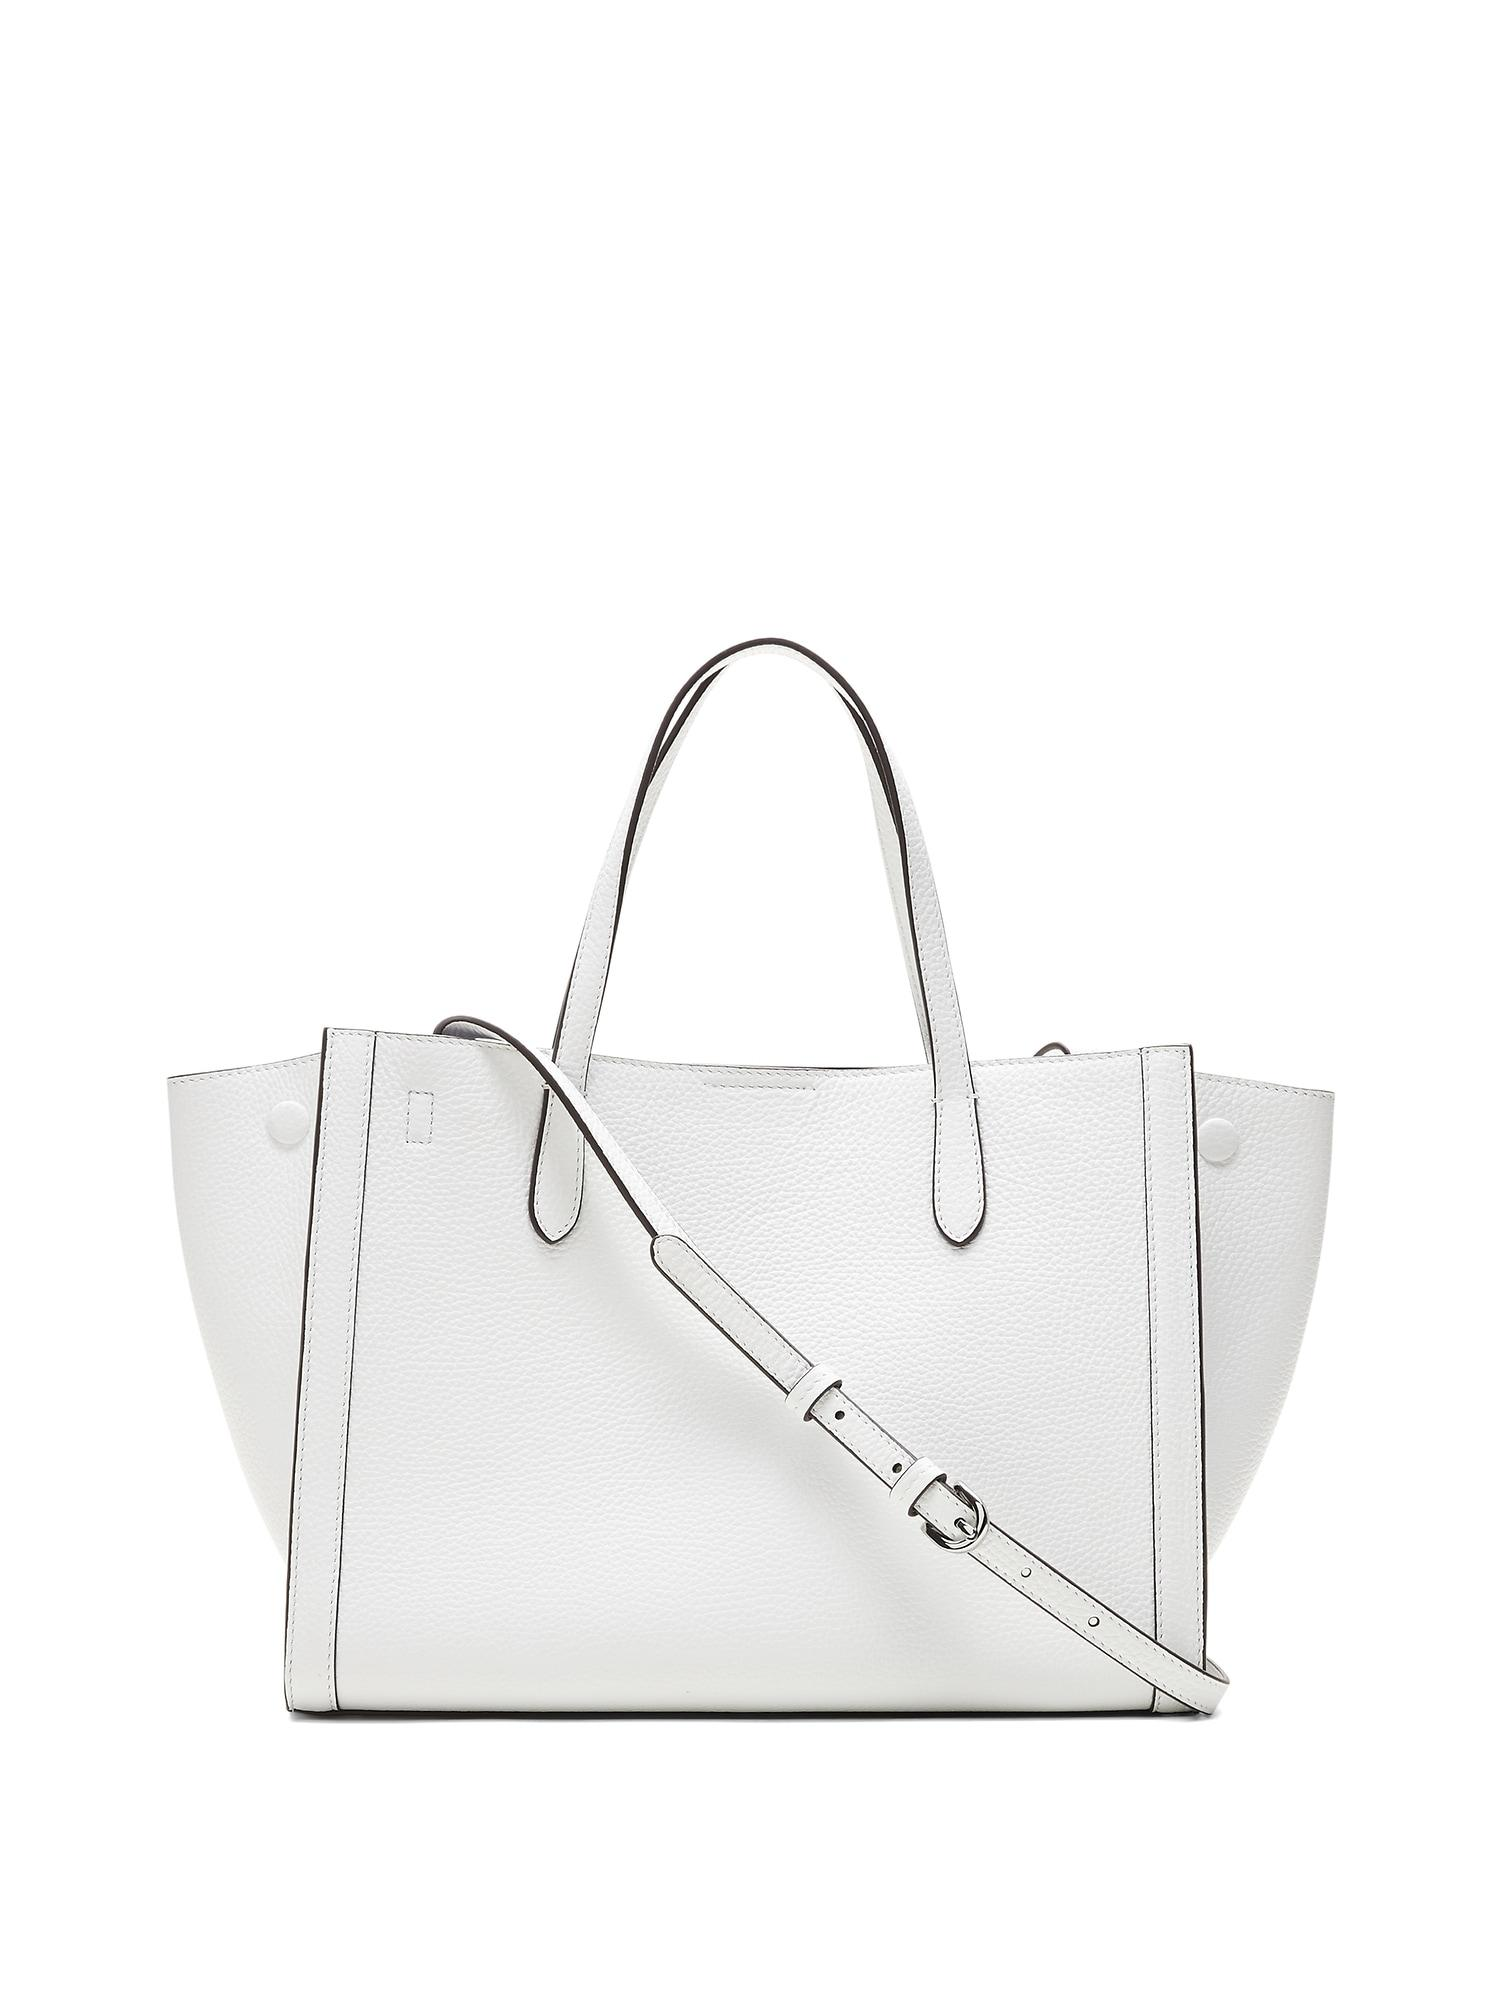 2e23ae92a2c7 Lyst - Banana Republic Italian Leather Medium Tailored Tote Bag in White